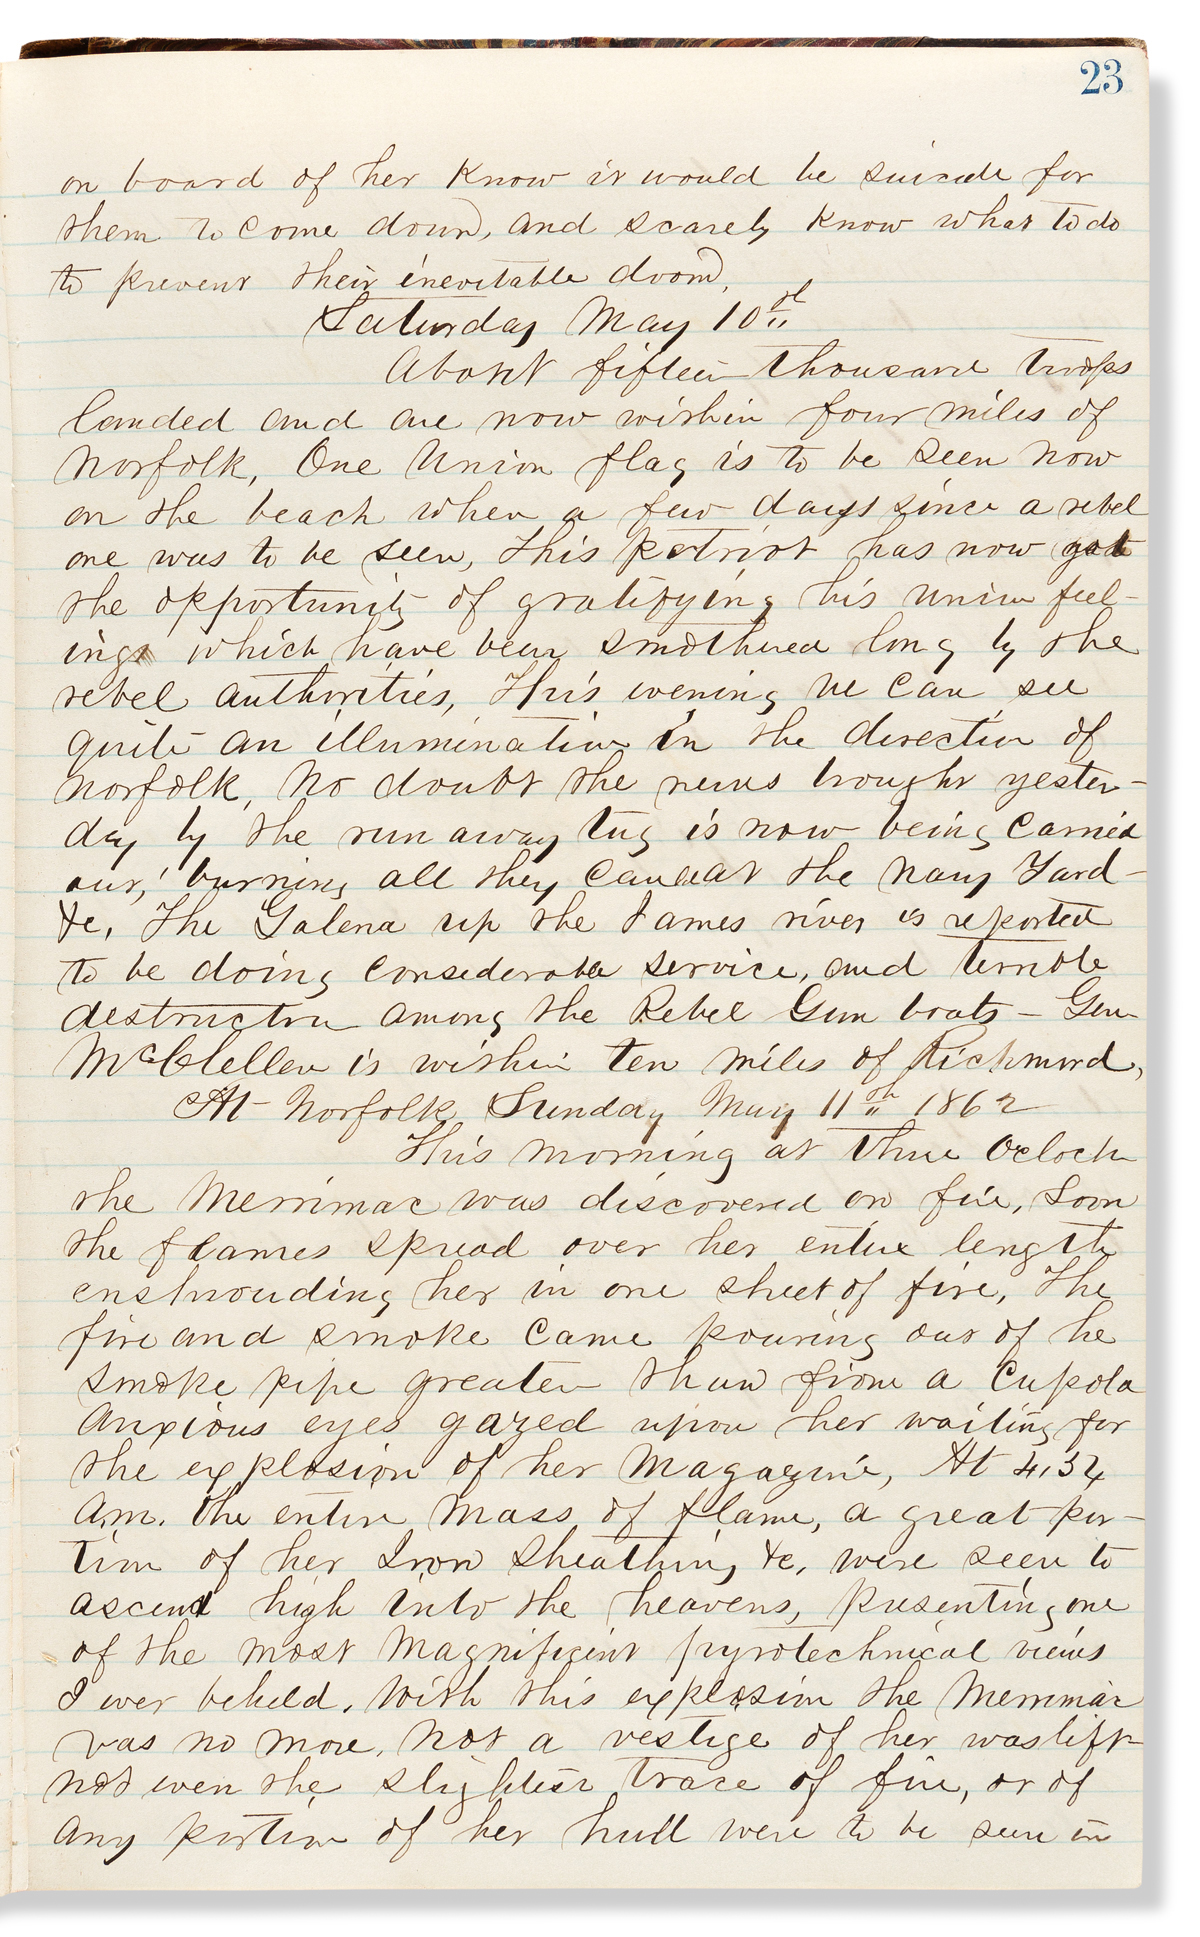 (CIVIL WAR--NAVY.) [Philip G. Peltz.] Diary of a naval officer in pursuit of the Merrimac.